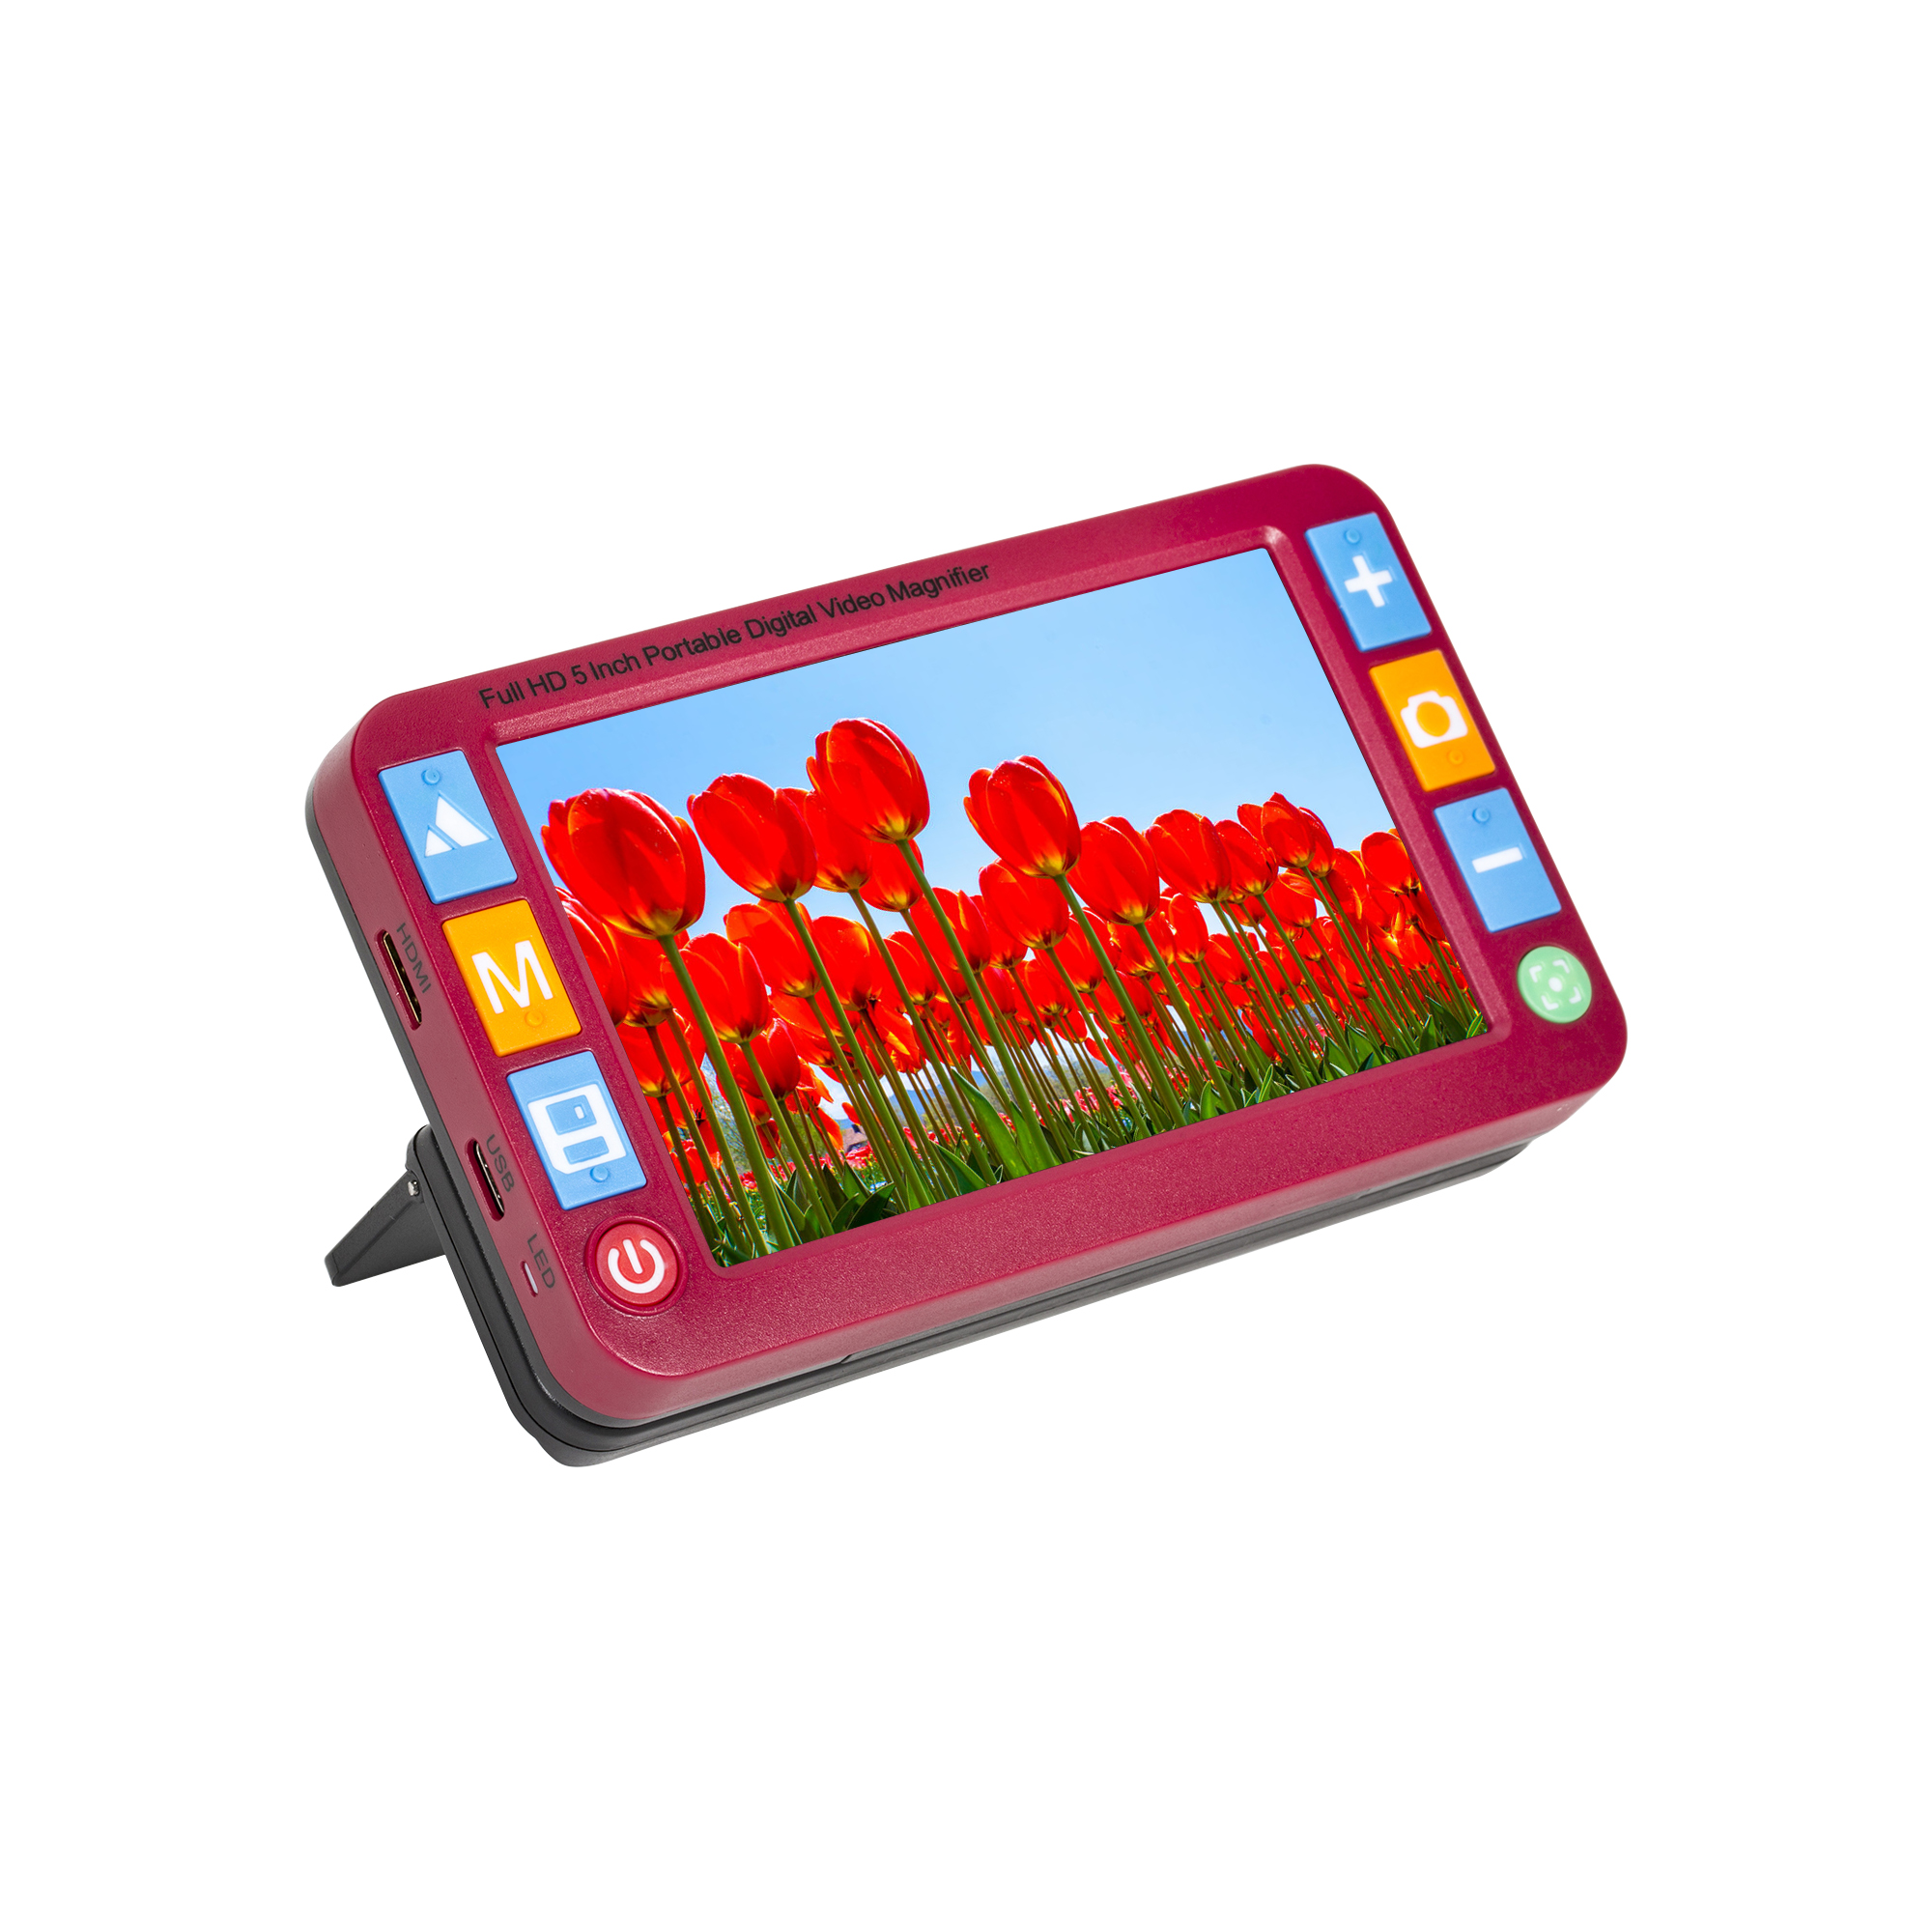 Reizen Portable Digital Video Magnifier with 5-inch LCD- Red